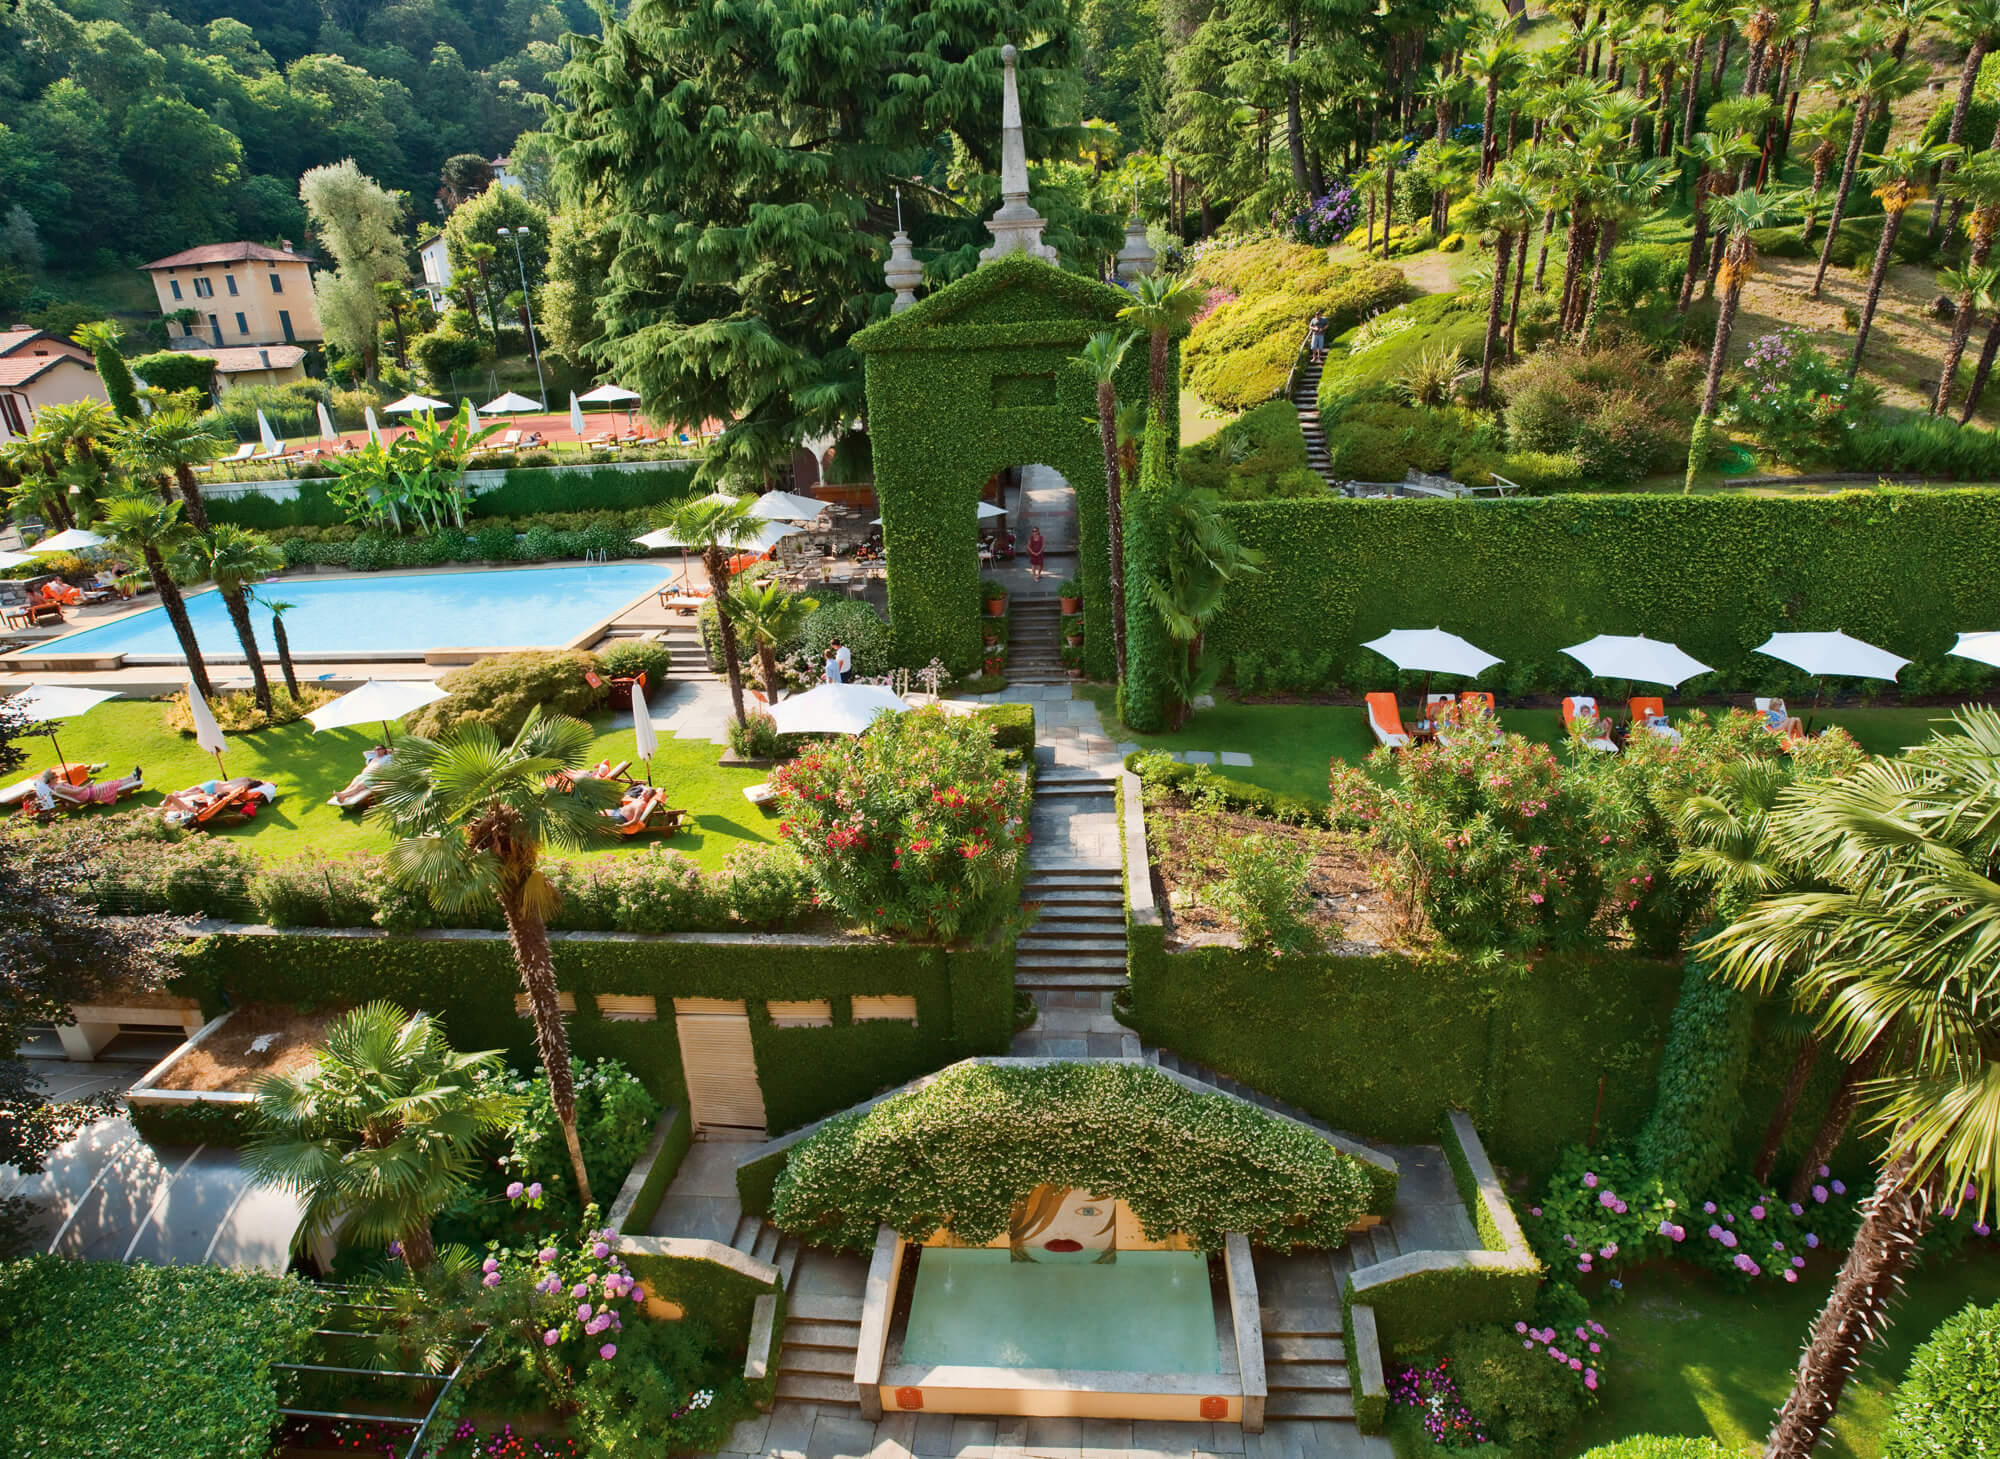 The manicured gardens of the hotel